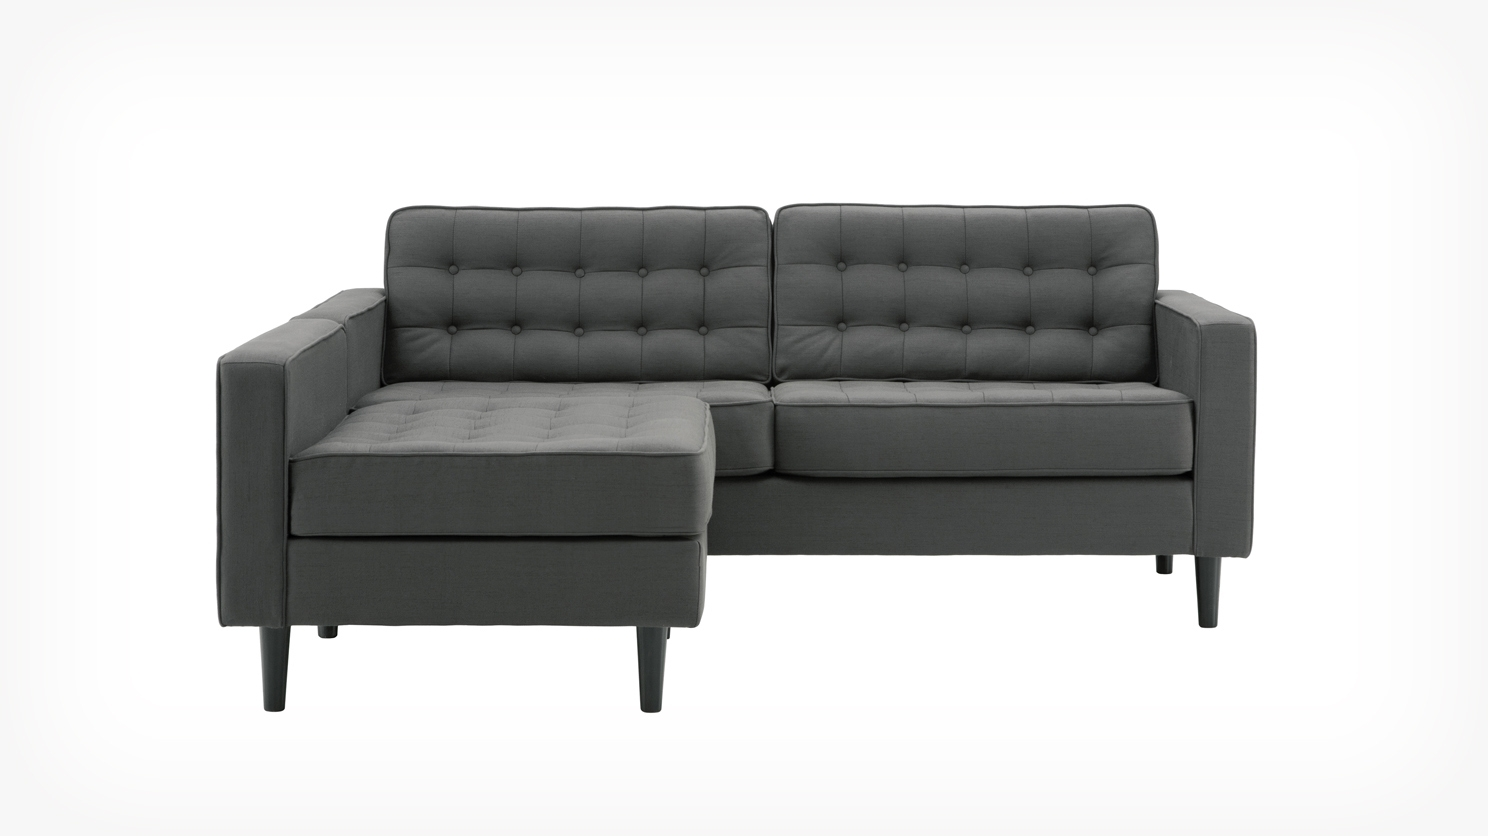 Furniture : Sectional In Large Living Room Costco Sectional Sofa Regarding Widely Used Kijiji Ottawa Sectional Sofas (View 7 of 20)